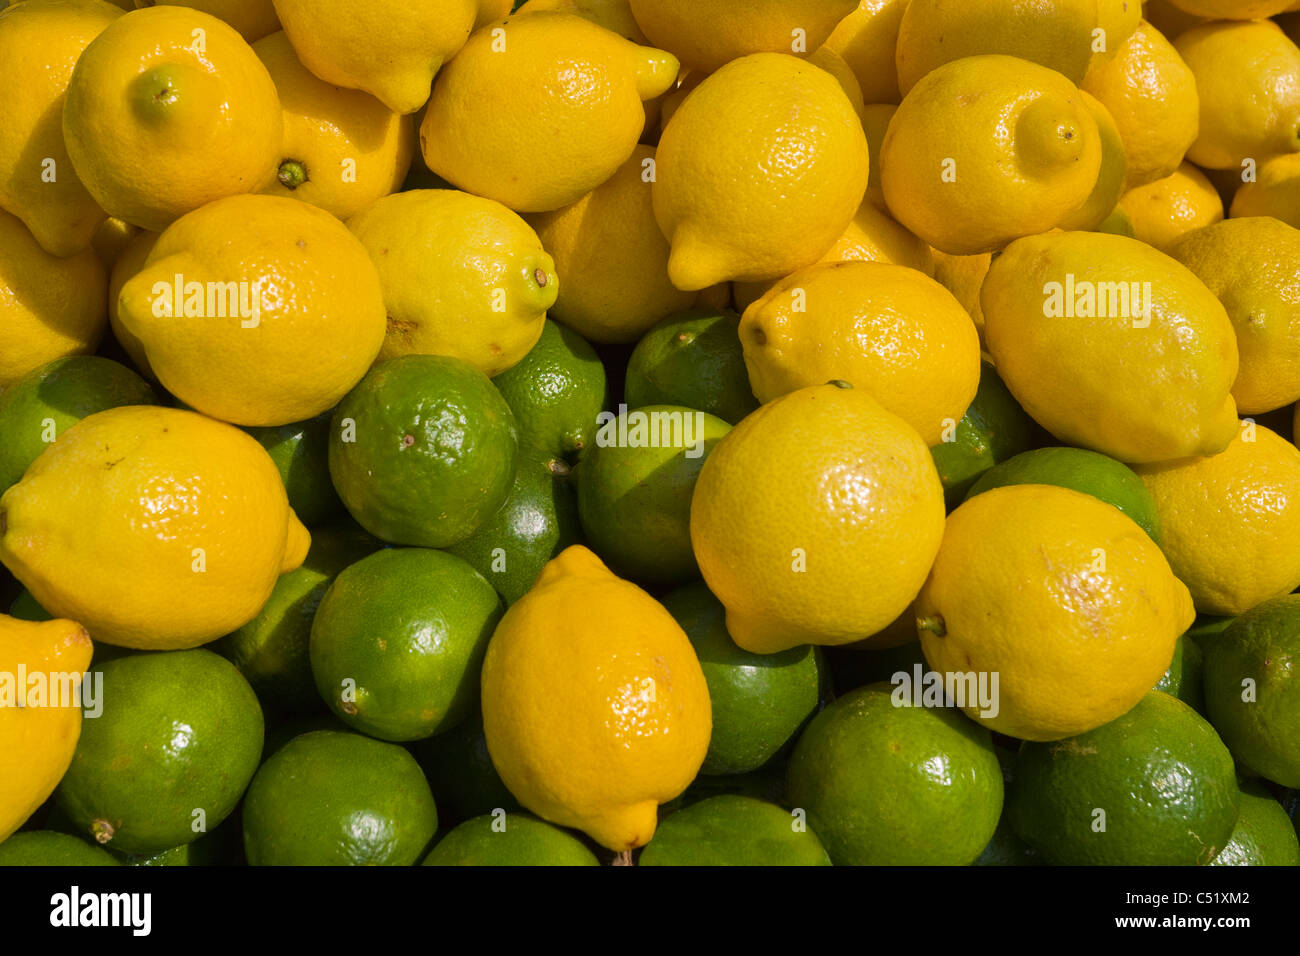 Lemons and Limes at Public Market in Rochester New York - Stock Image